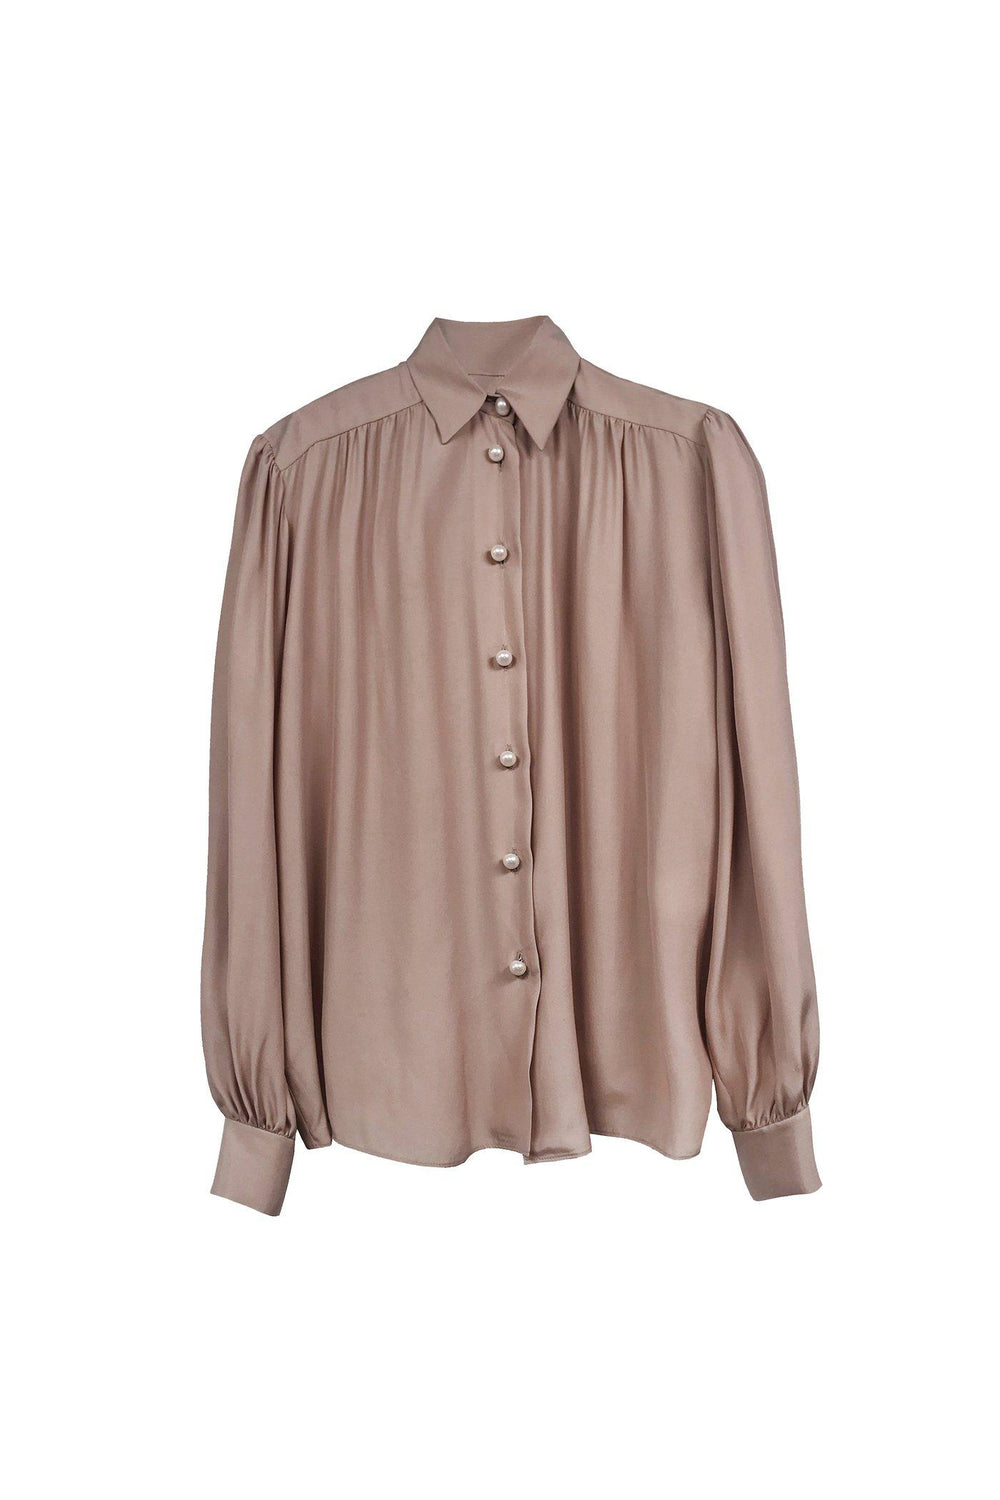 RYAN ROCHE Silk blouse with puff sleeve and pearl buttons in ambrosia